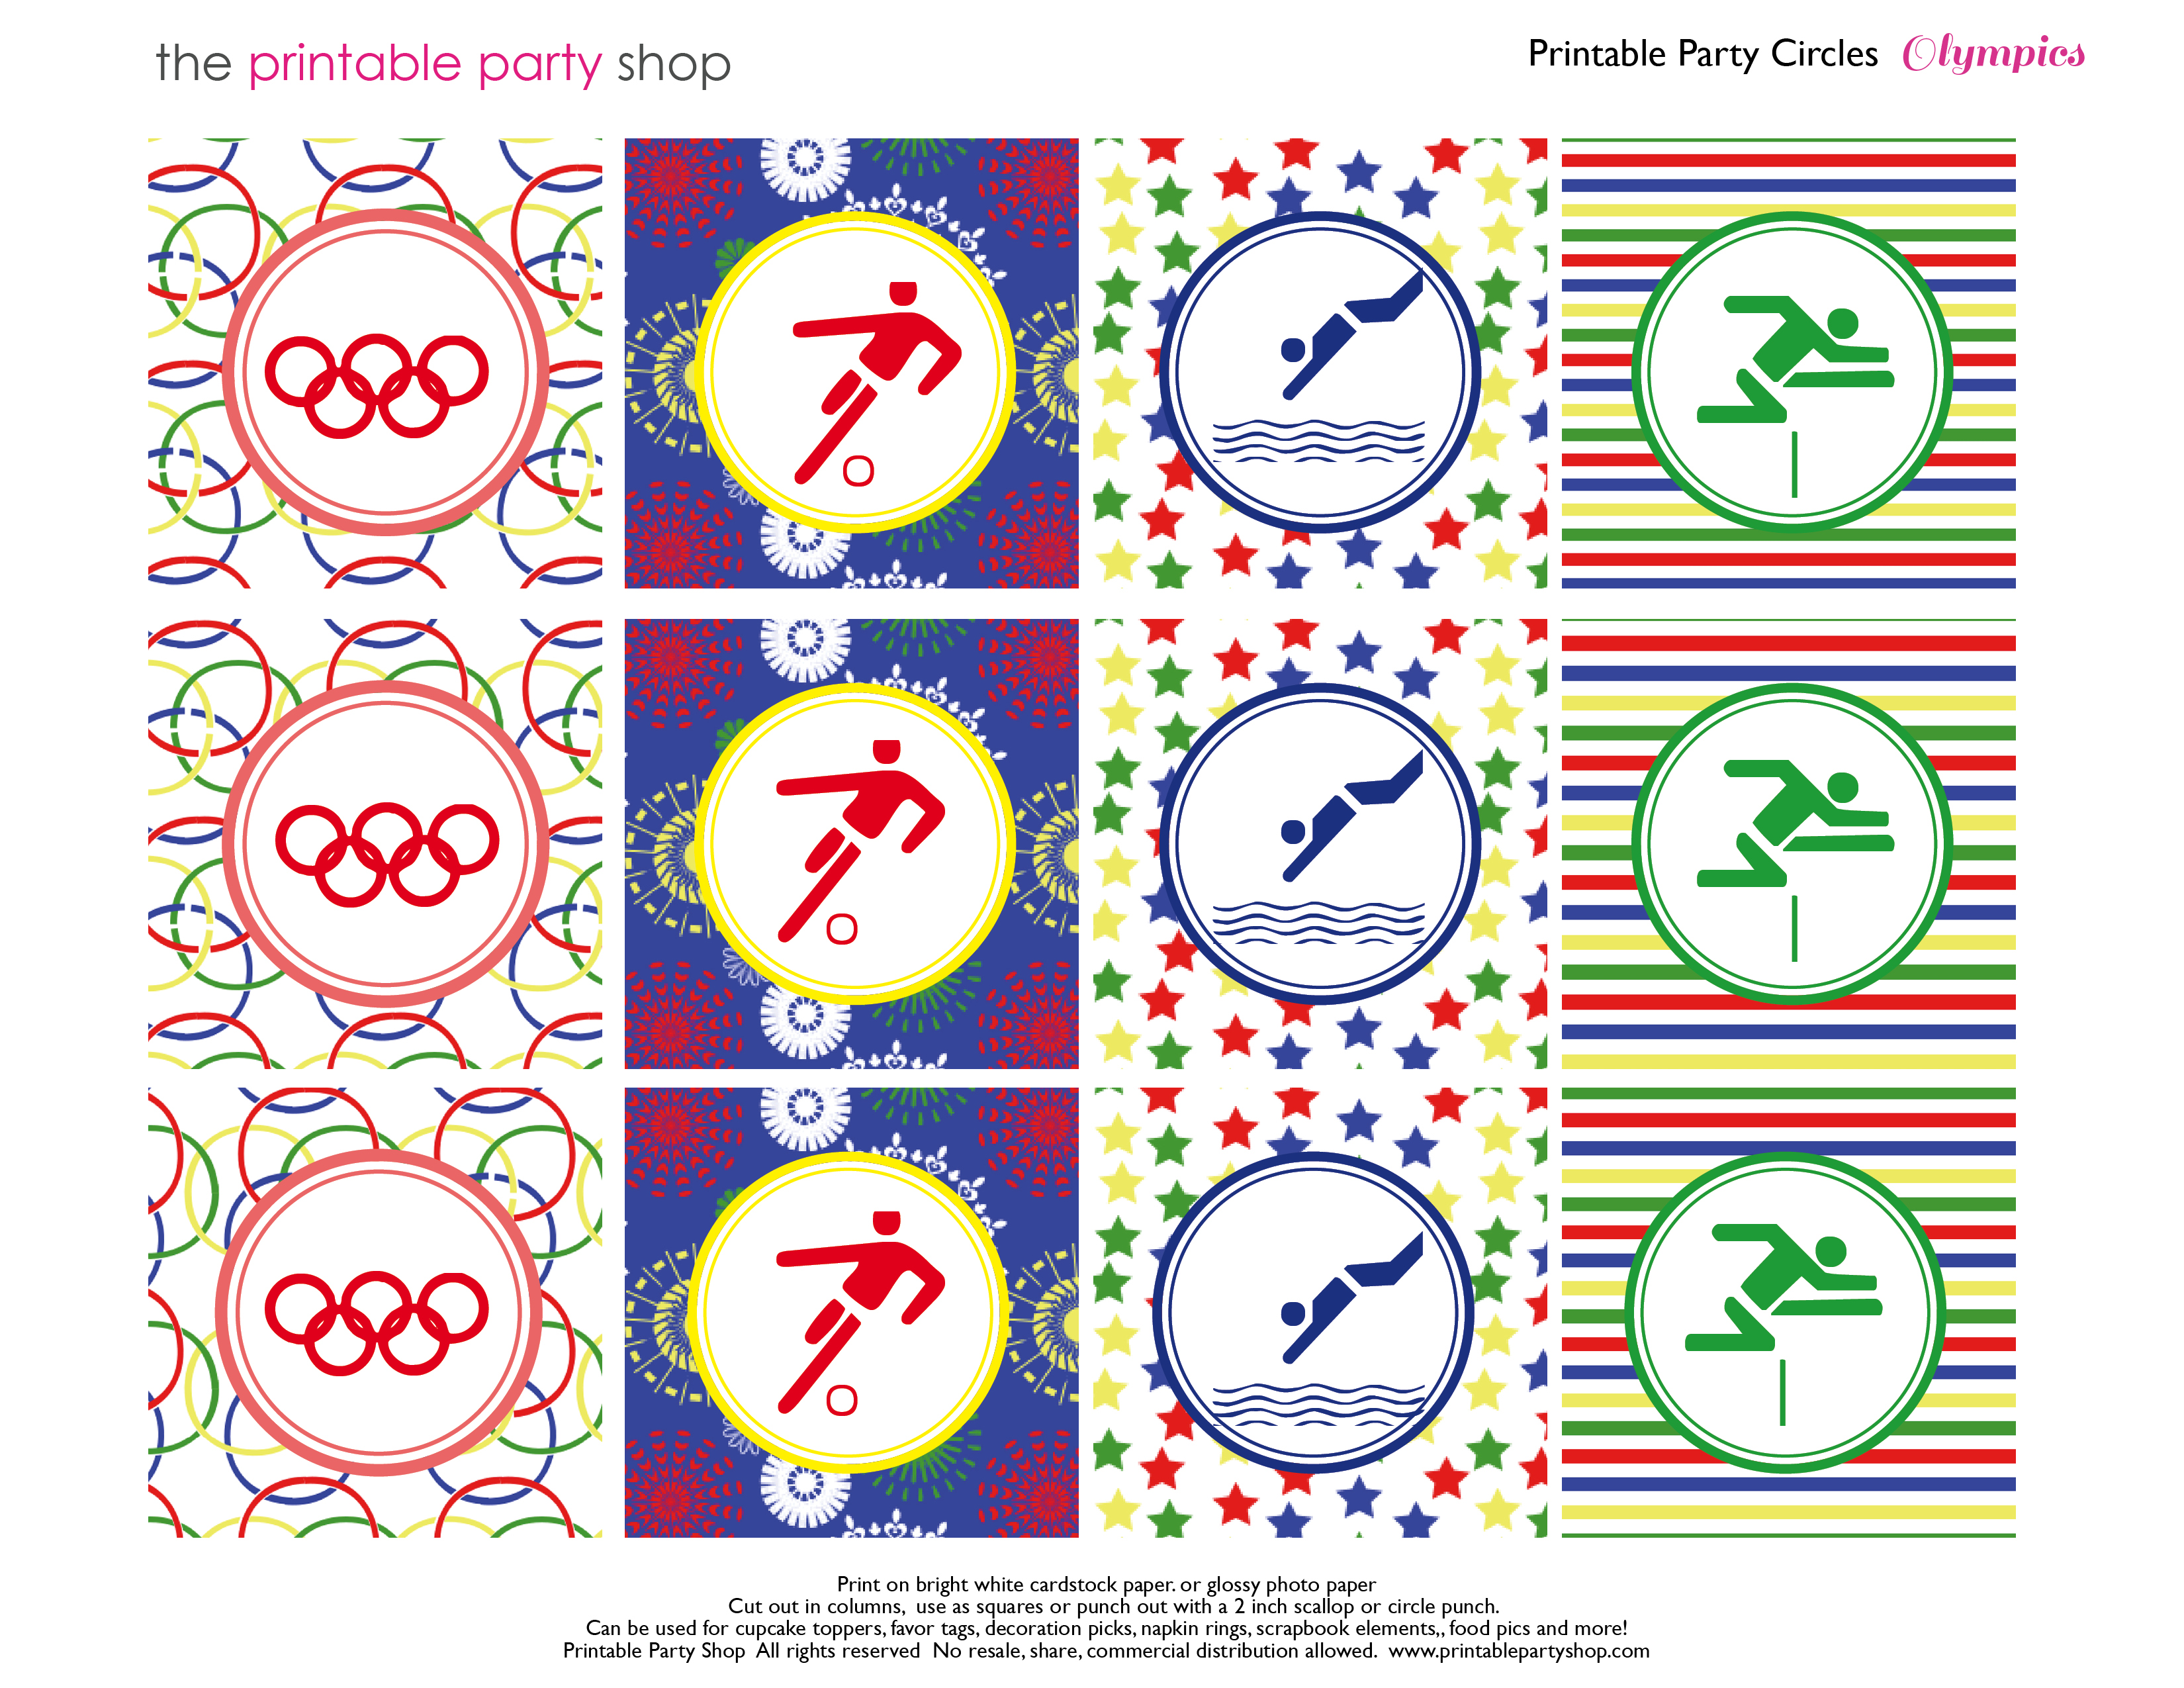 photo regarding Printable Olympic Schedule identify Olympics for Children - Enjoyable Olympic Game titles and Occasion Printables